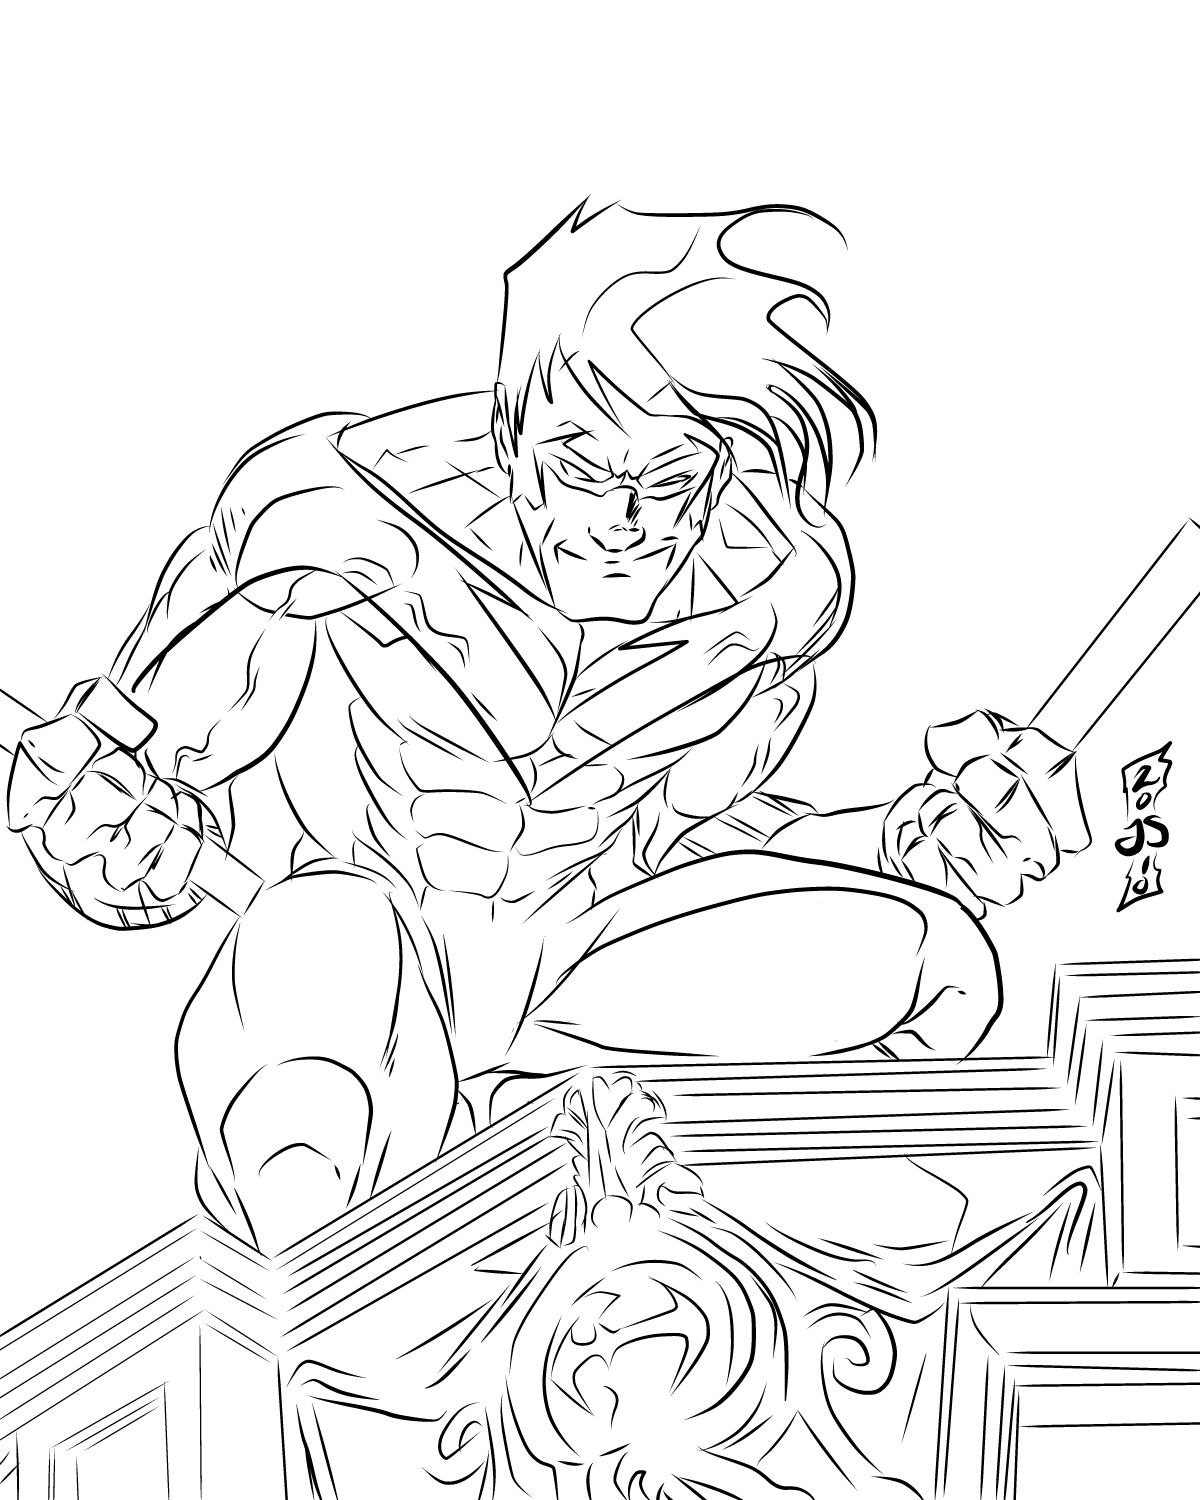 dc comics nightwing coloring pages - photo#11